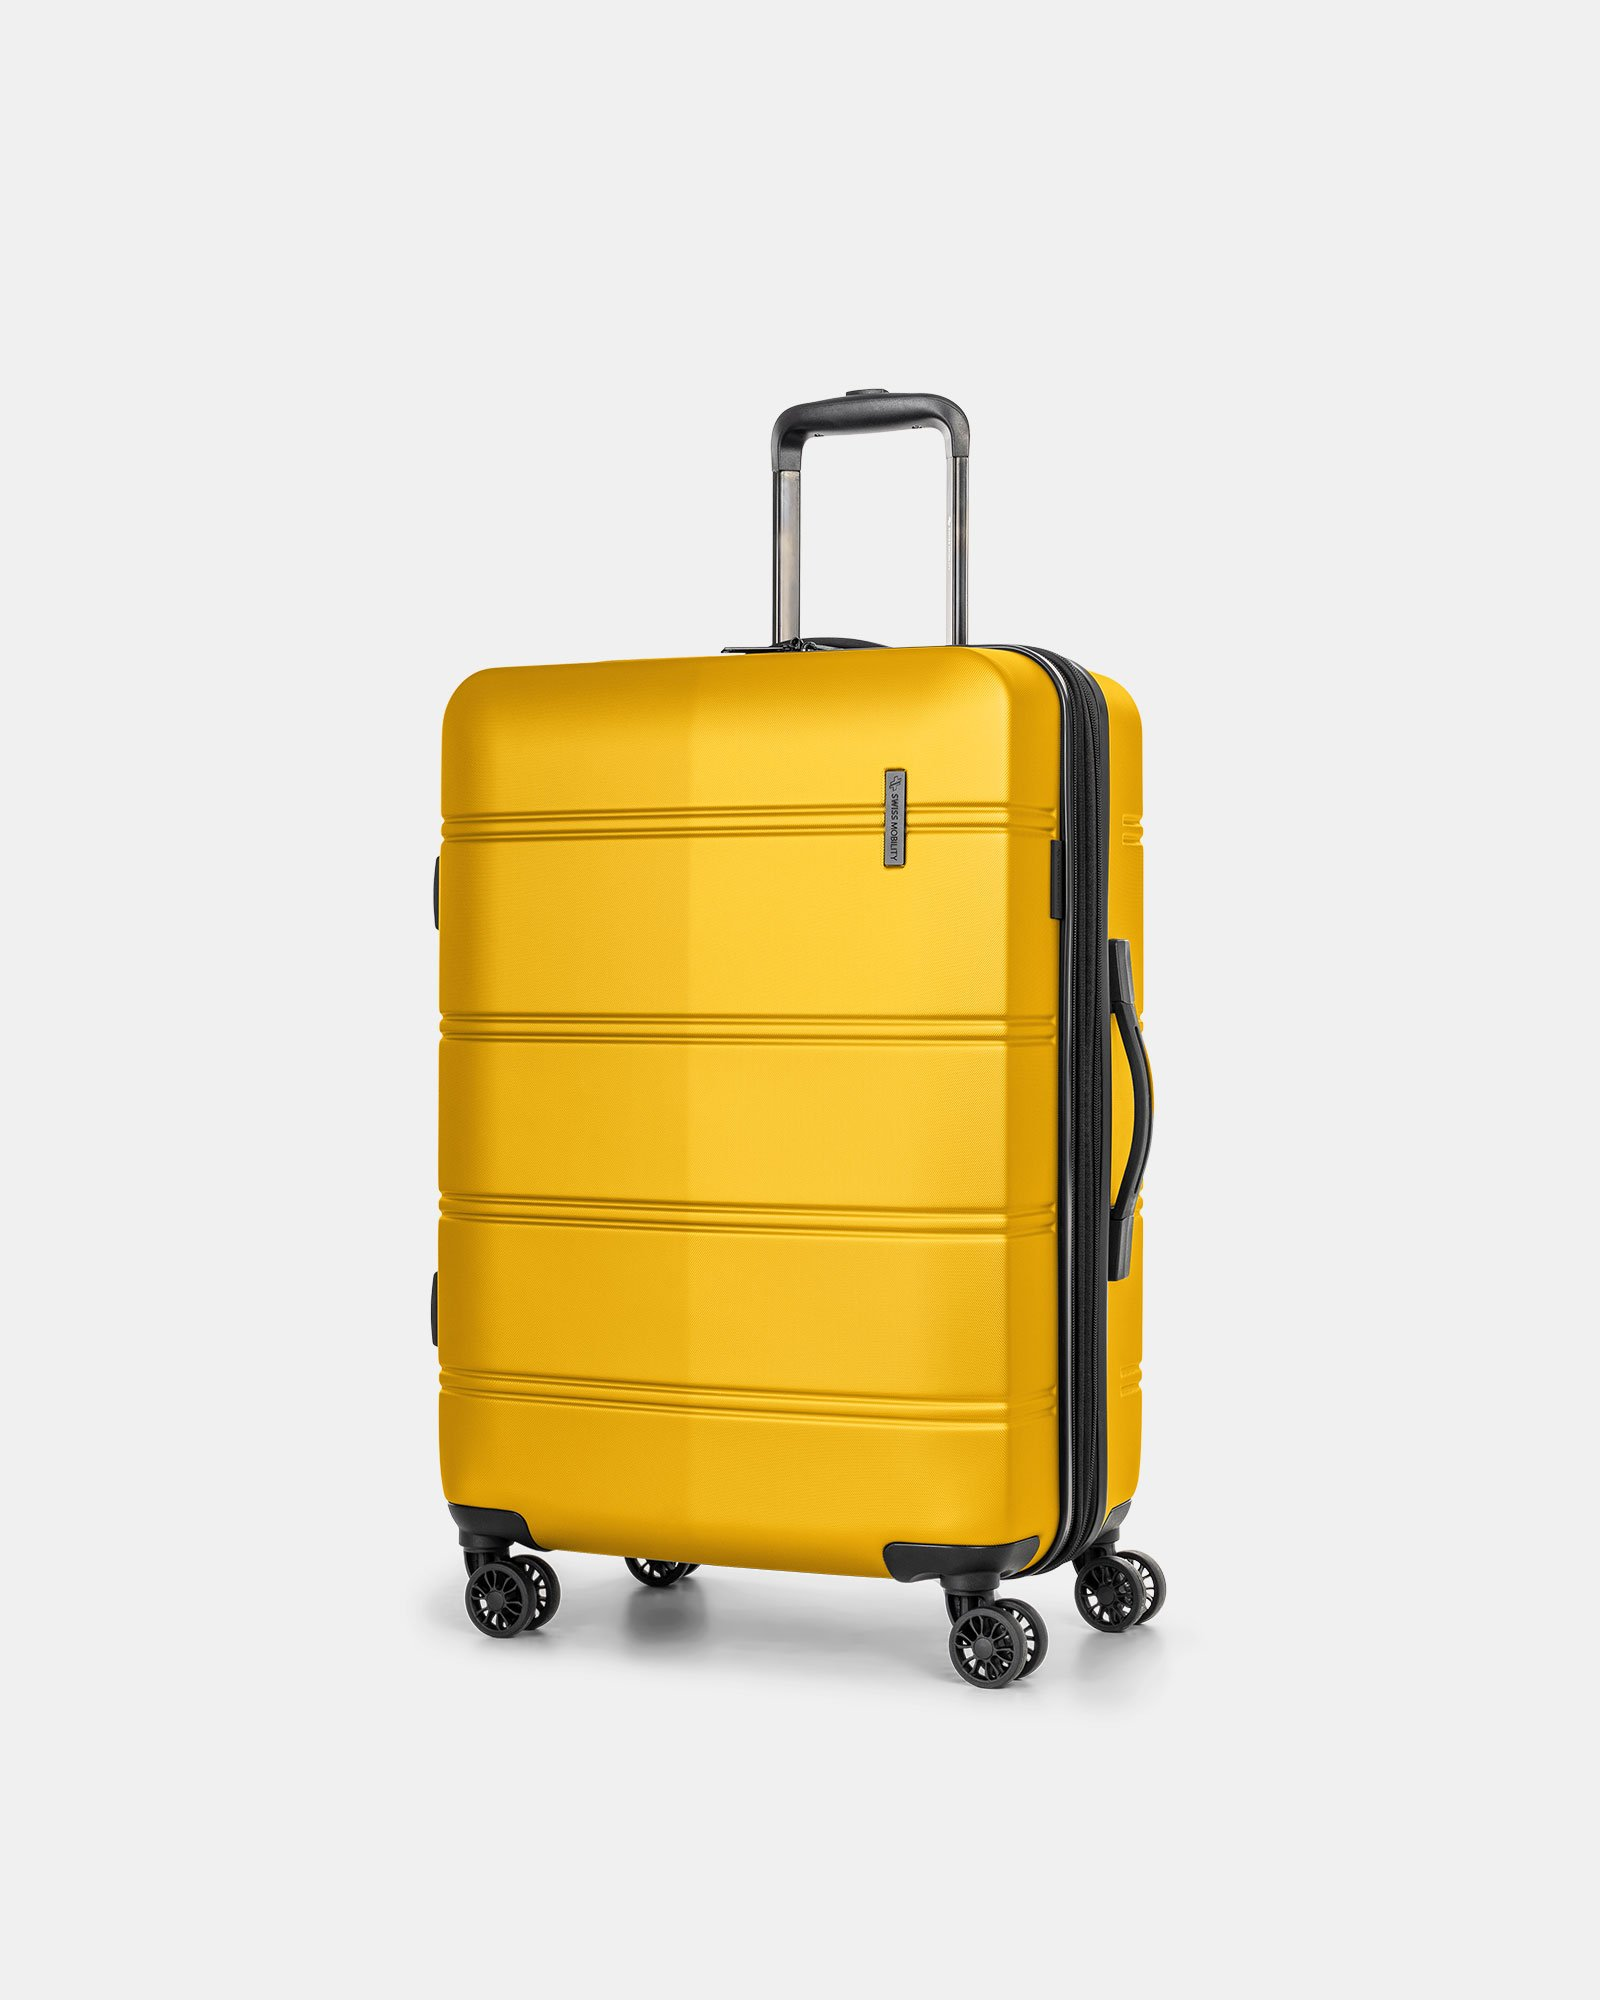 "LAX - 26"" LIGHTWEIGHT HARDSIDE LUGGAGE - YELLOW - Swiss Mobility - Zoom"